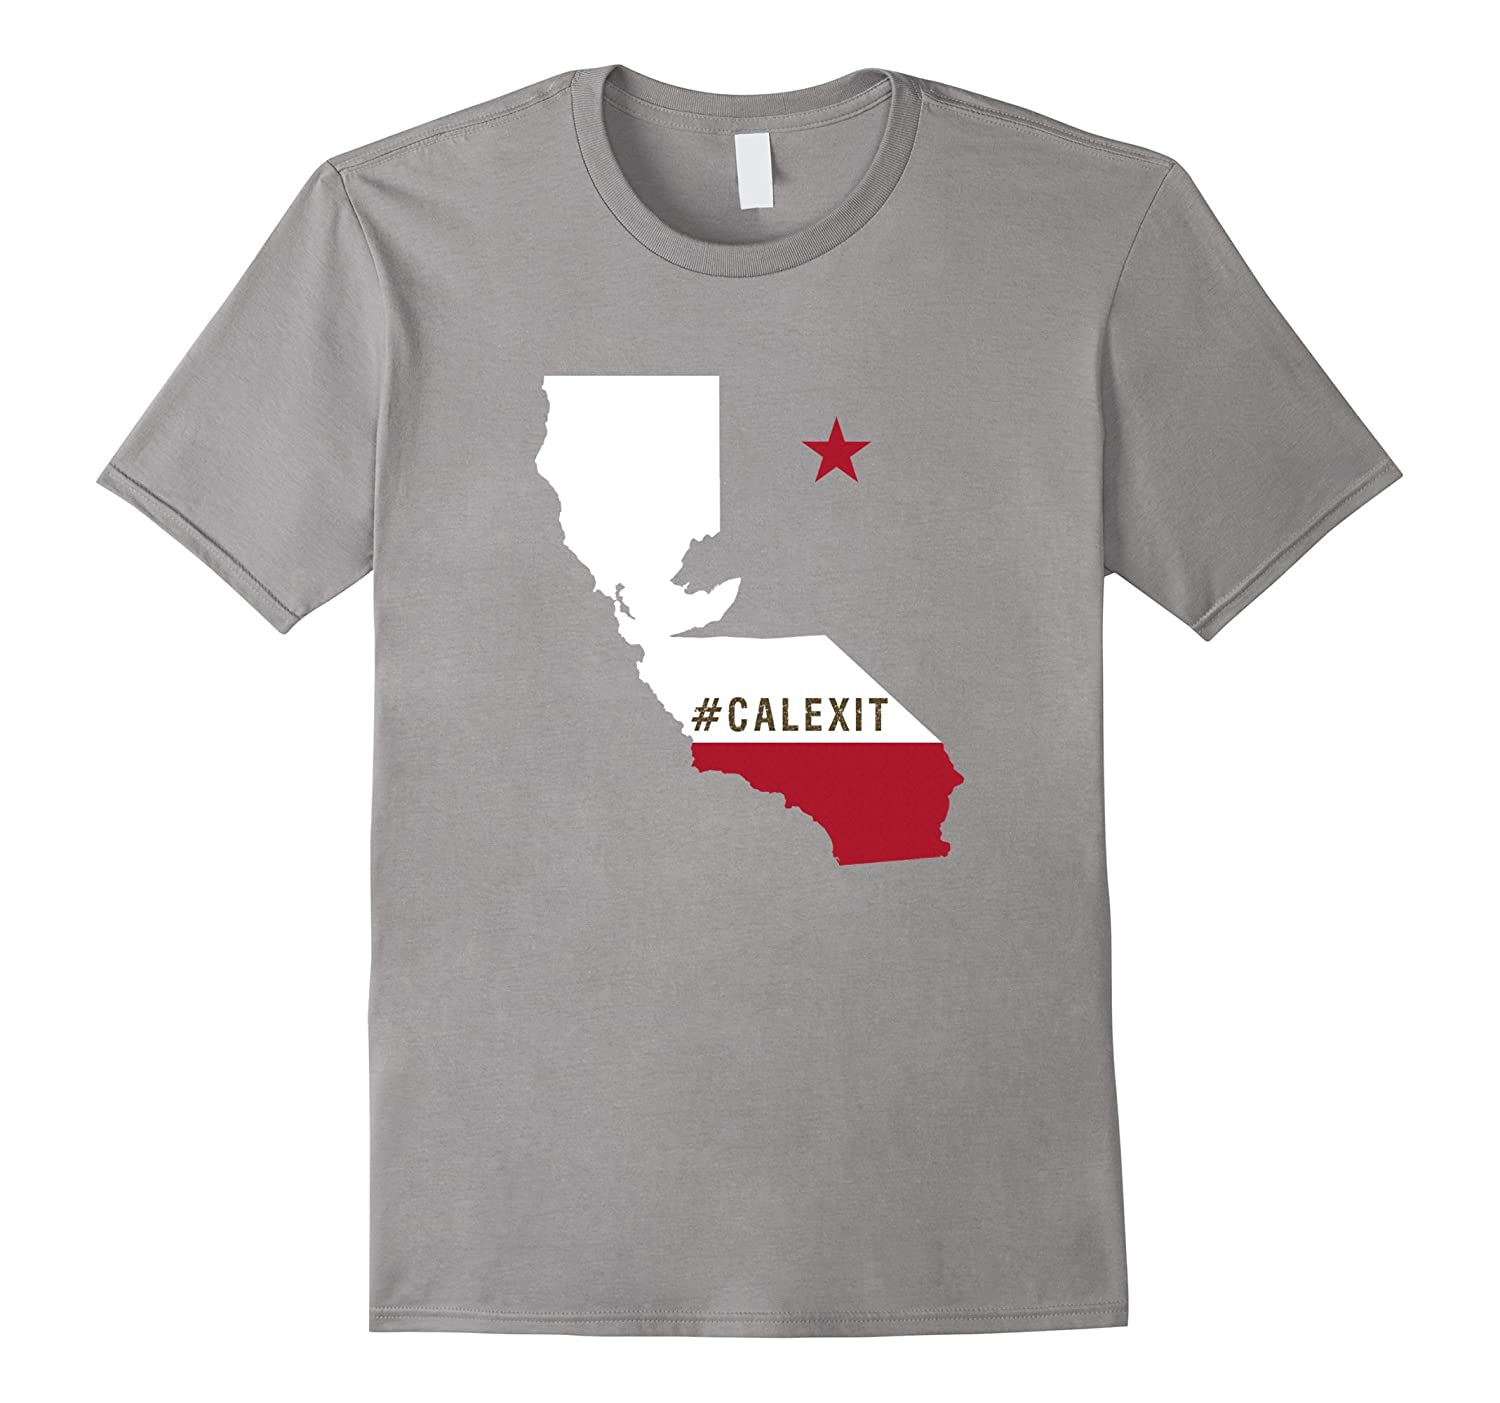 #CalExit Hashtag California Exit Secession USA Protest Tee-CL